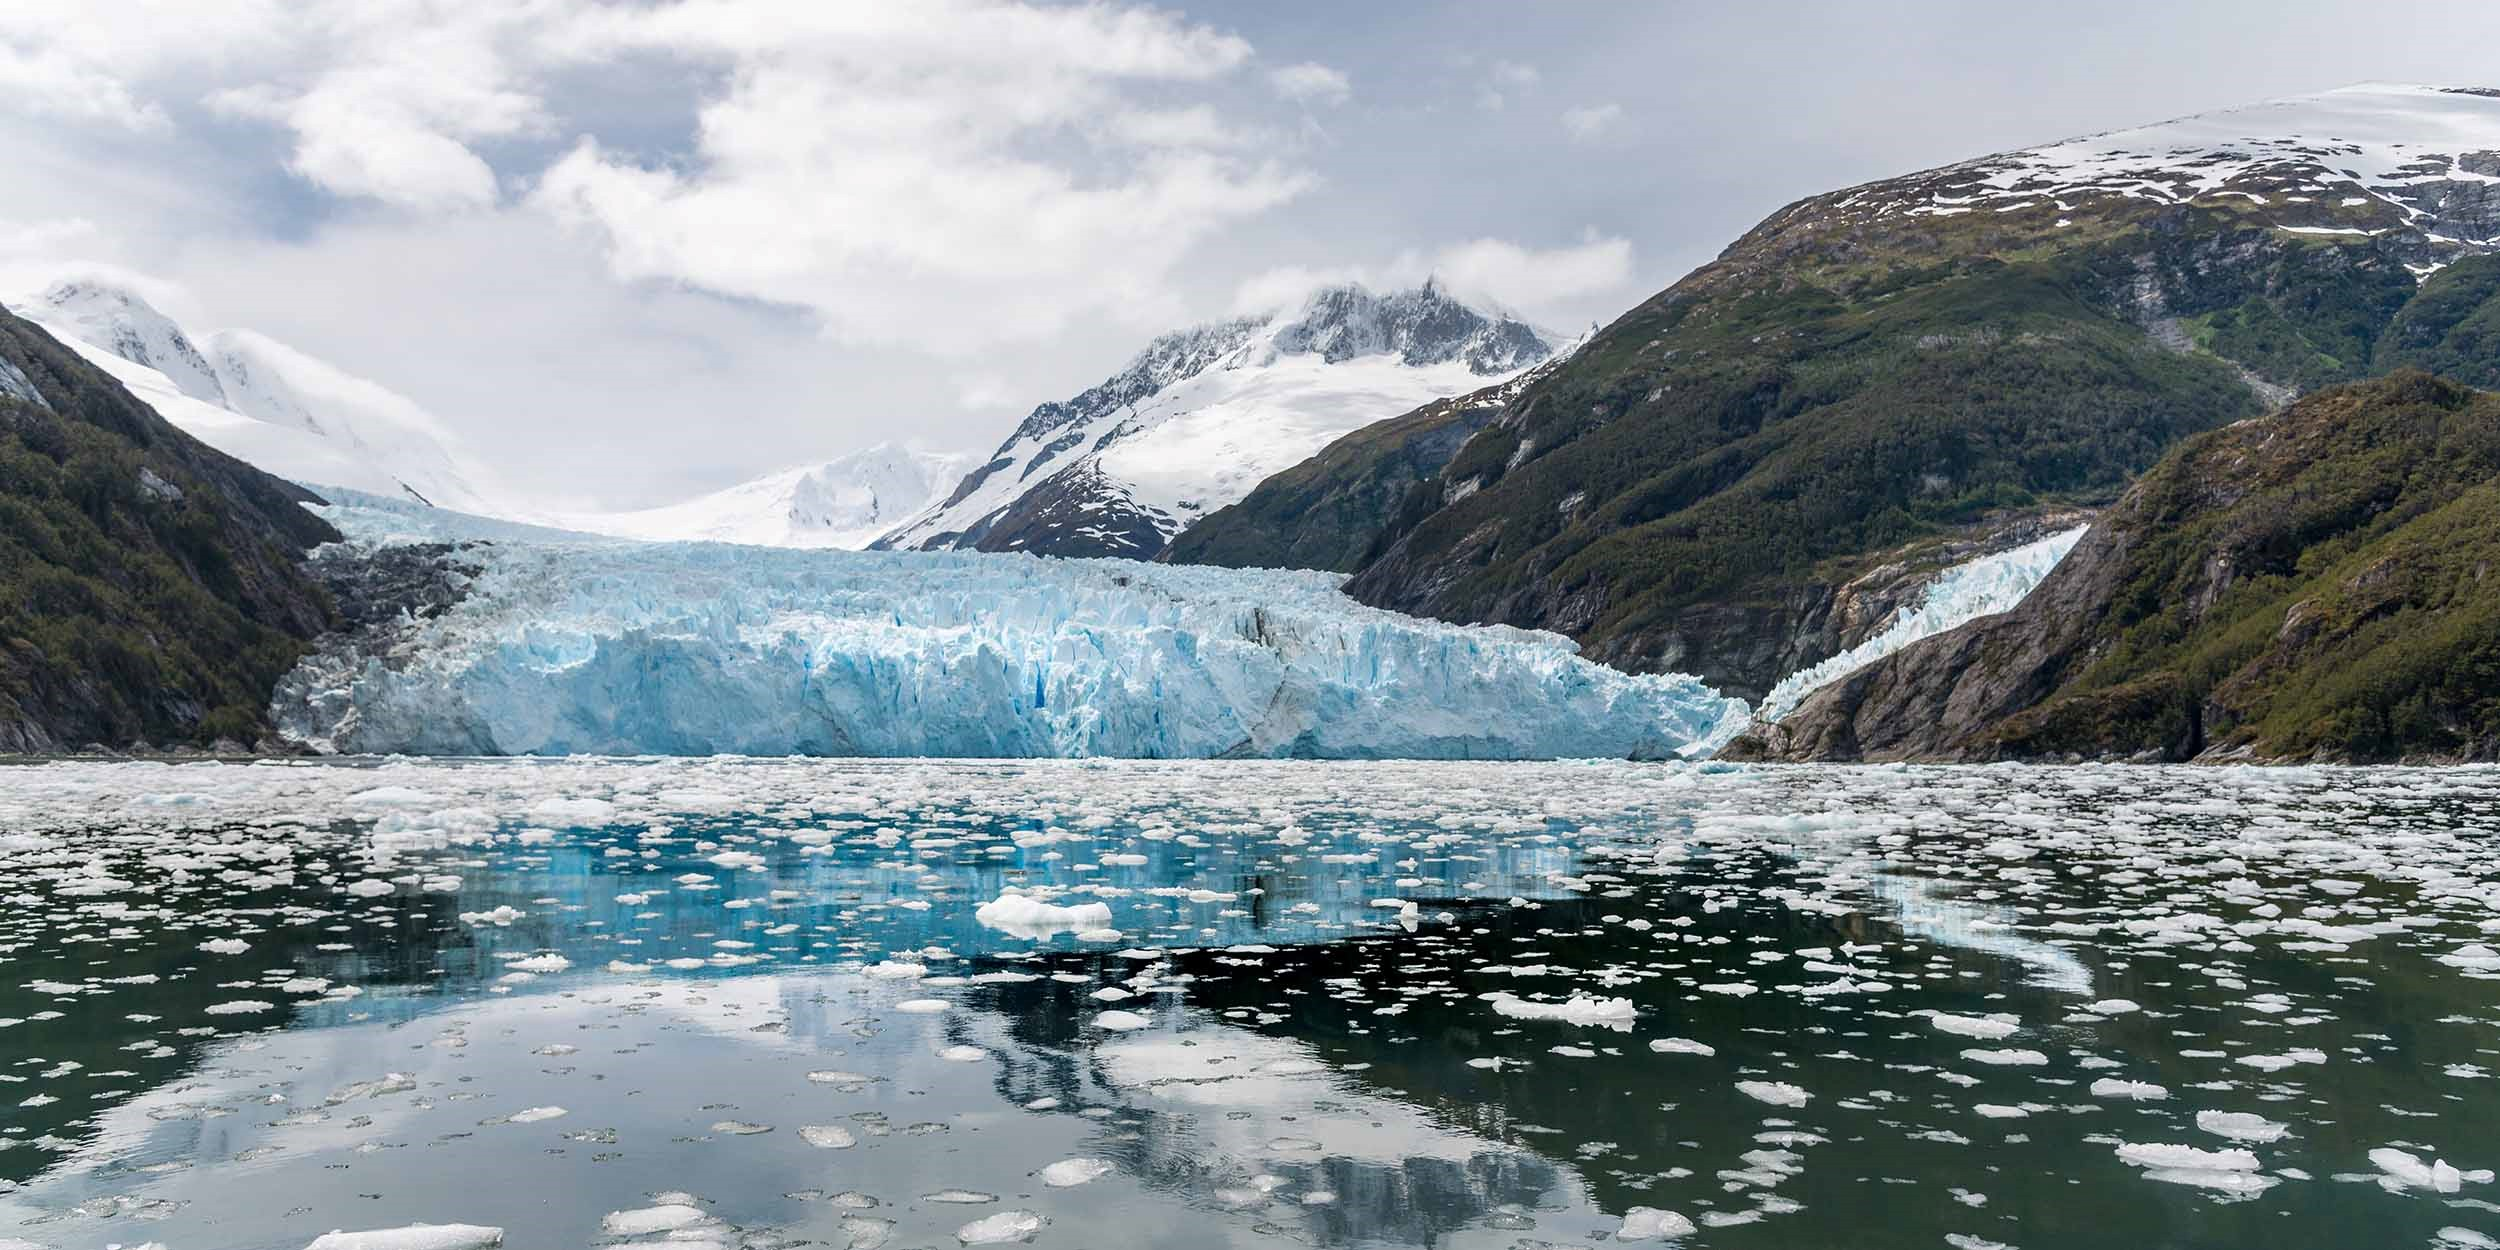 Antarctica, Patagonia, Chilean Fjords - Exploration of the Southern Highlights (Northbound)